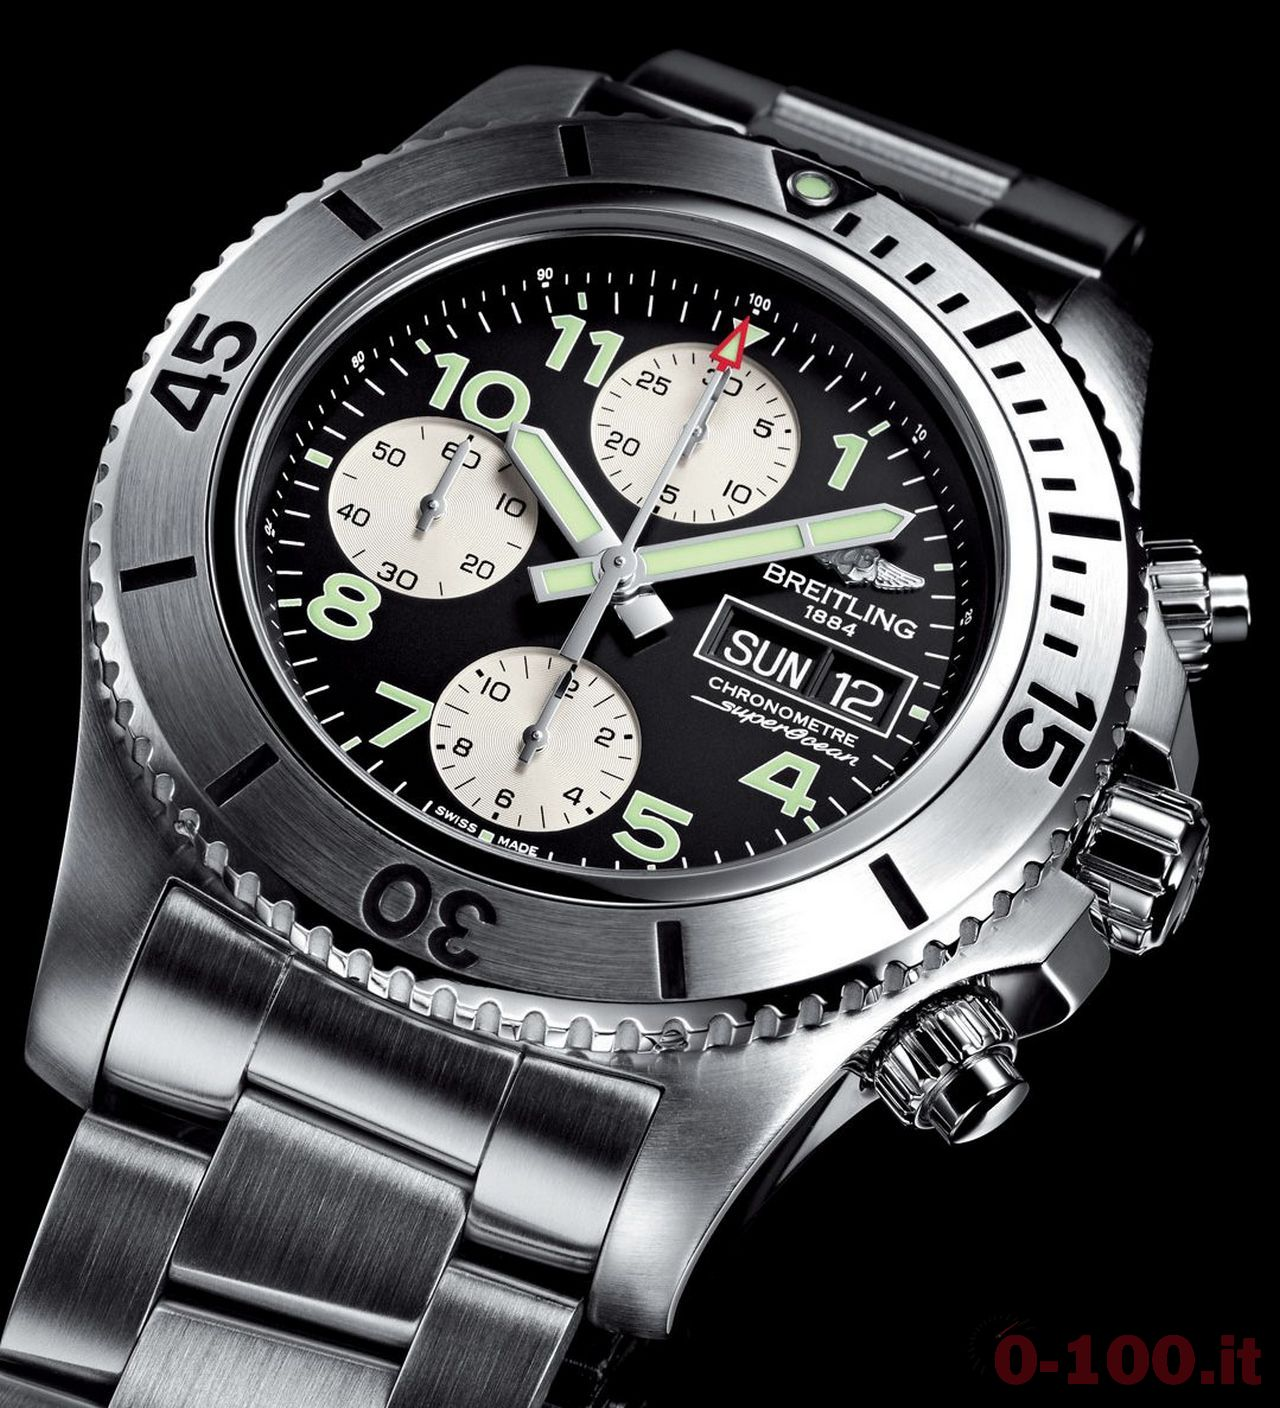 breitling-superocean-chronograph-steelfish-ref-a13341c3-bd19-162a-prezzo-price_0-1001